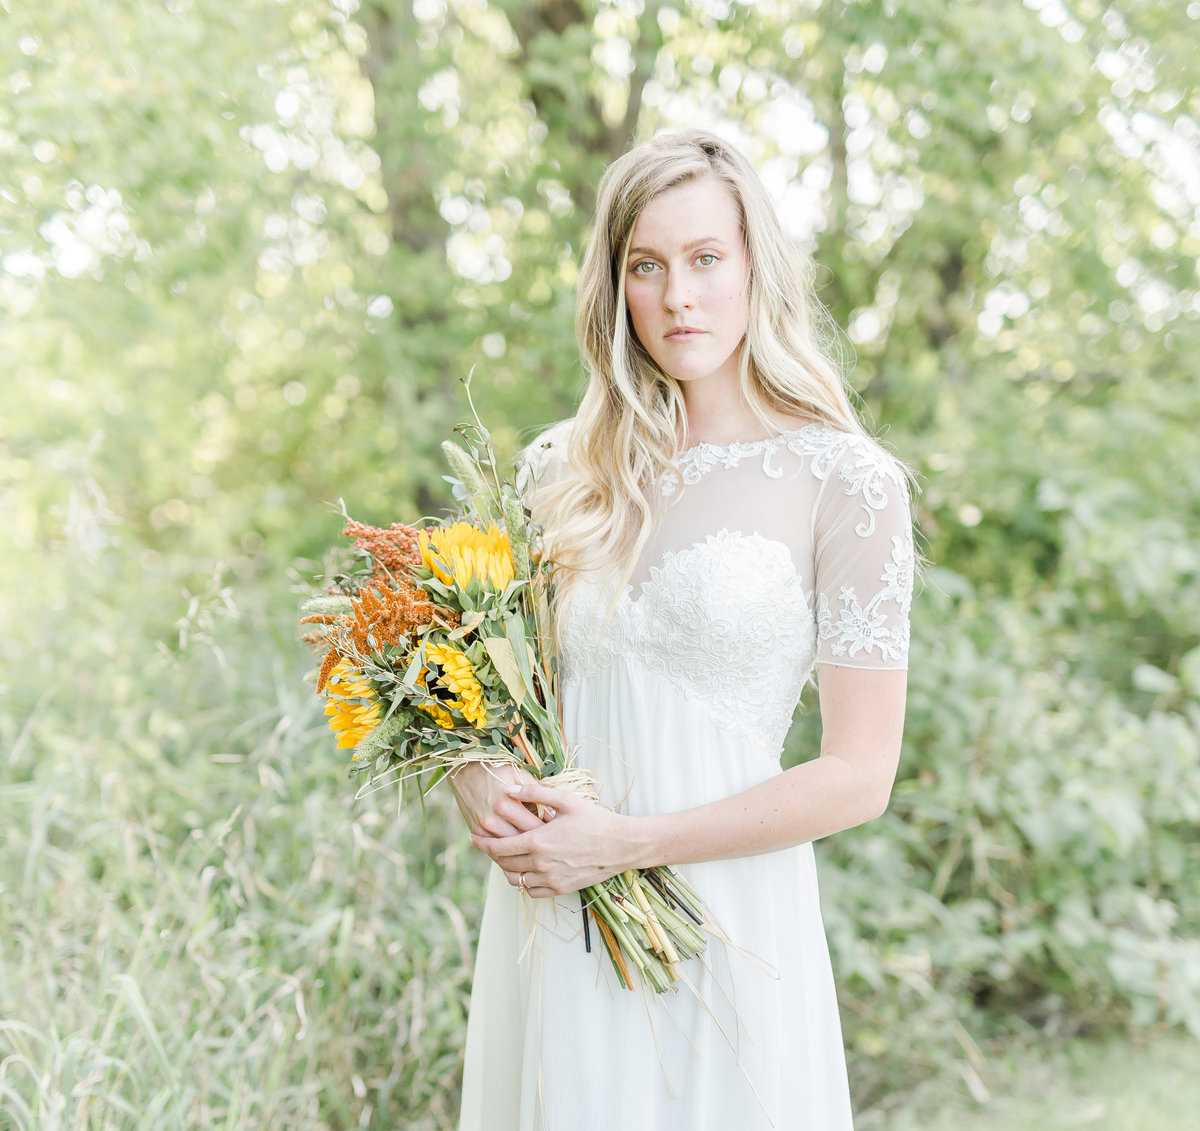 Kailey - Styled Shoot - New Edits-104